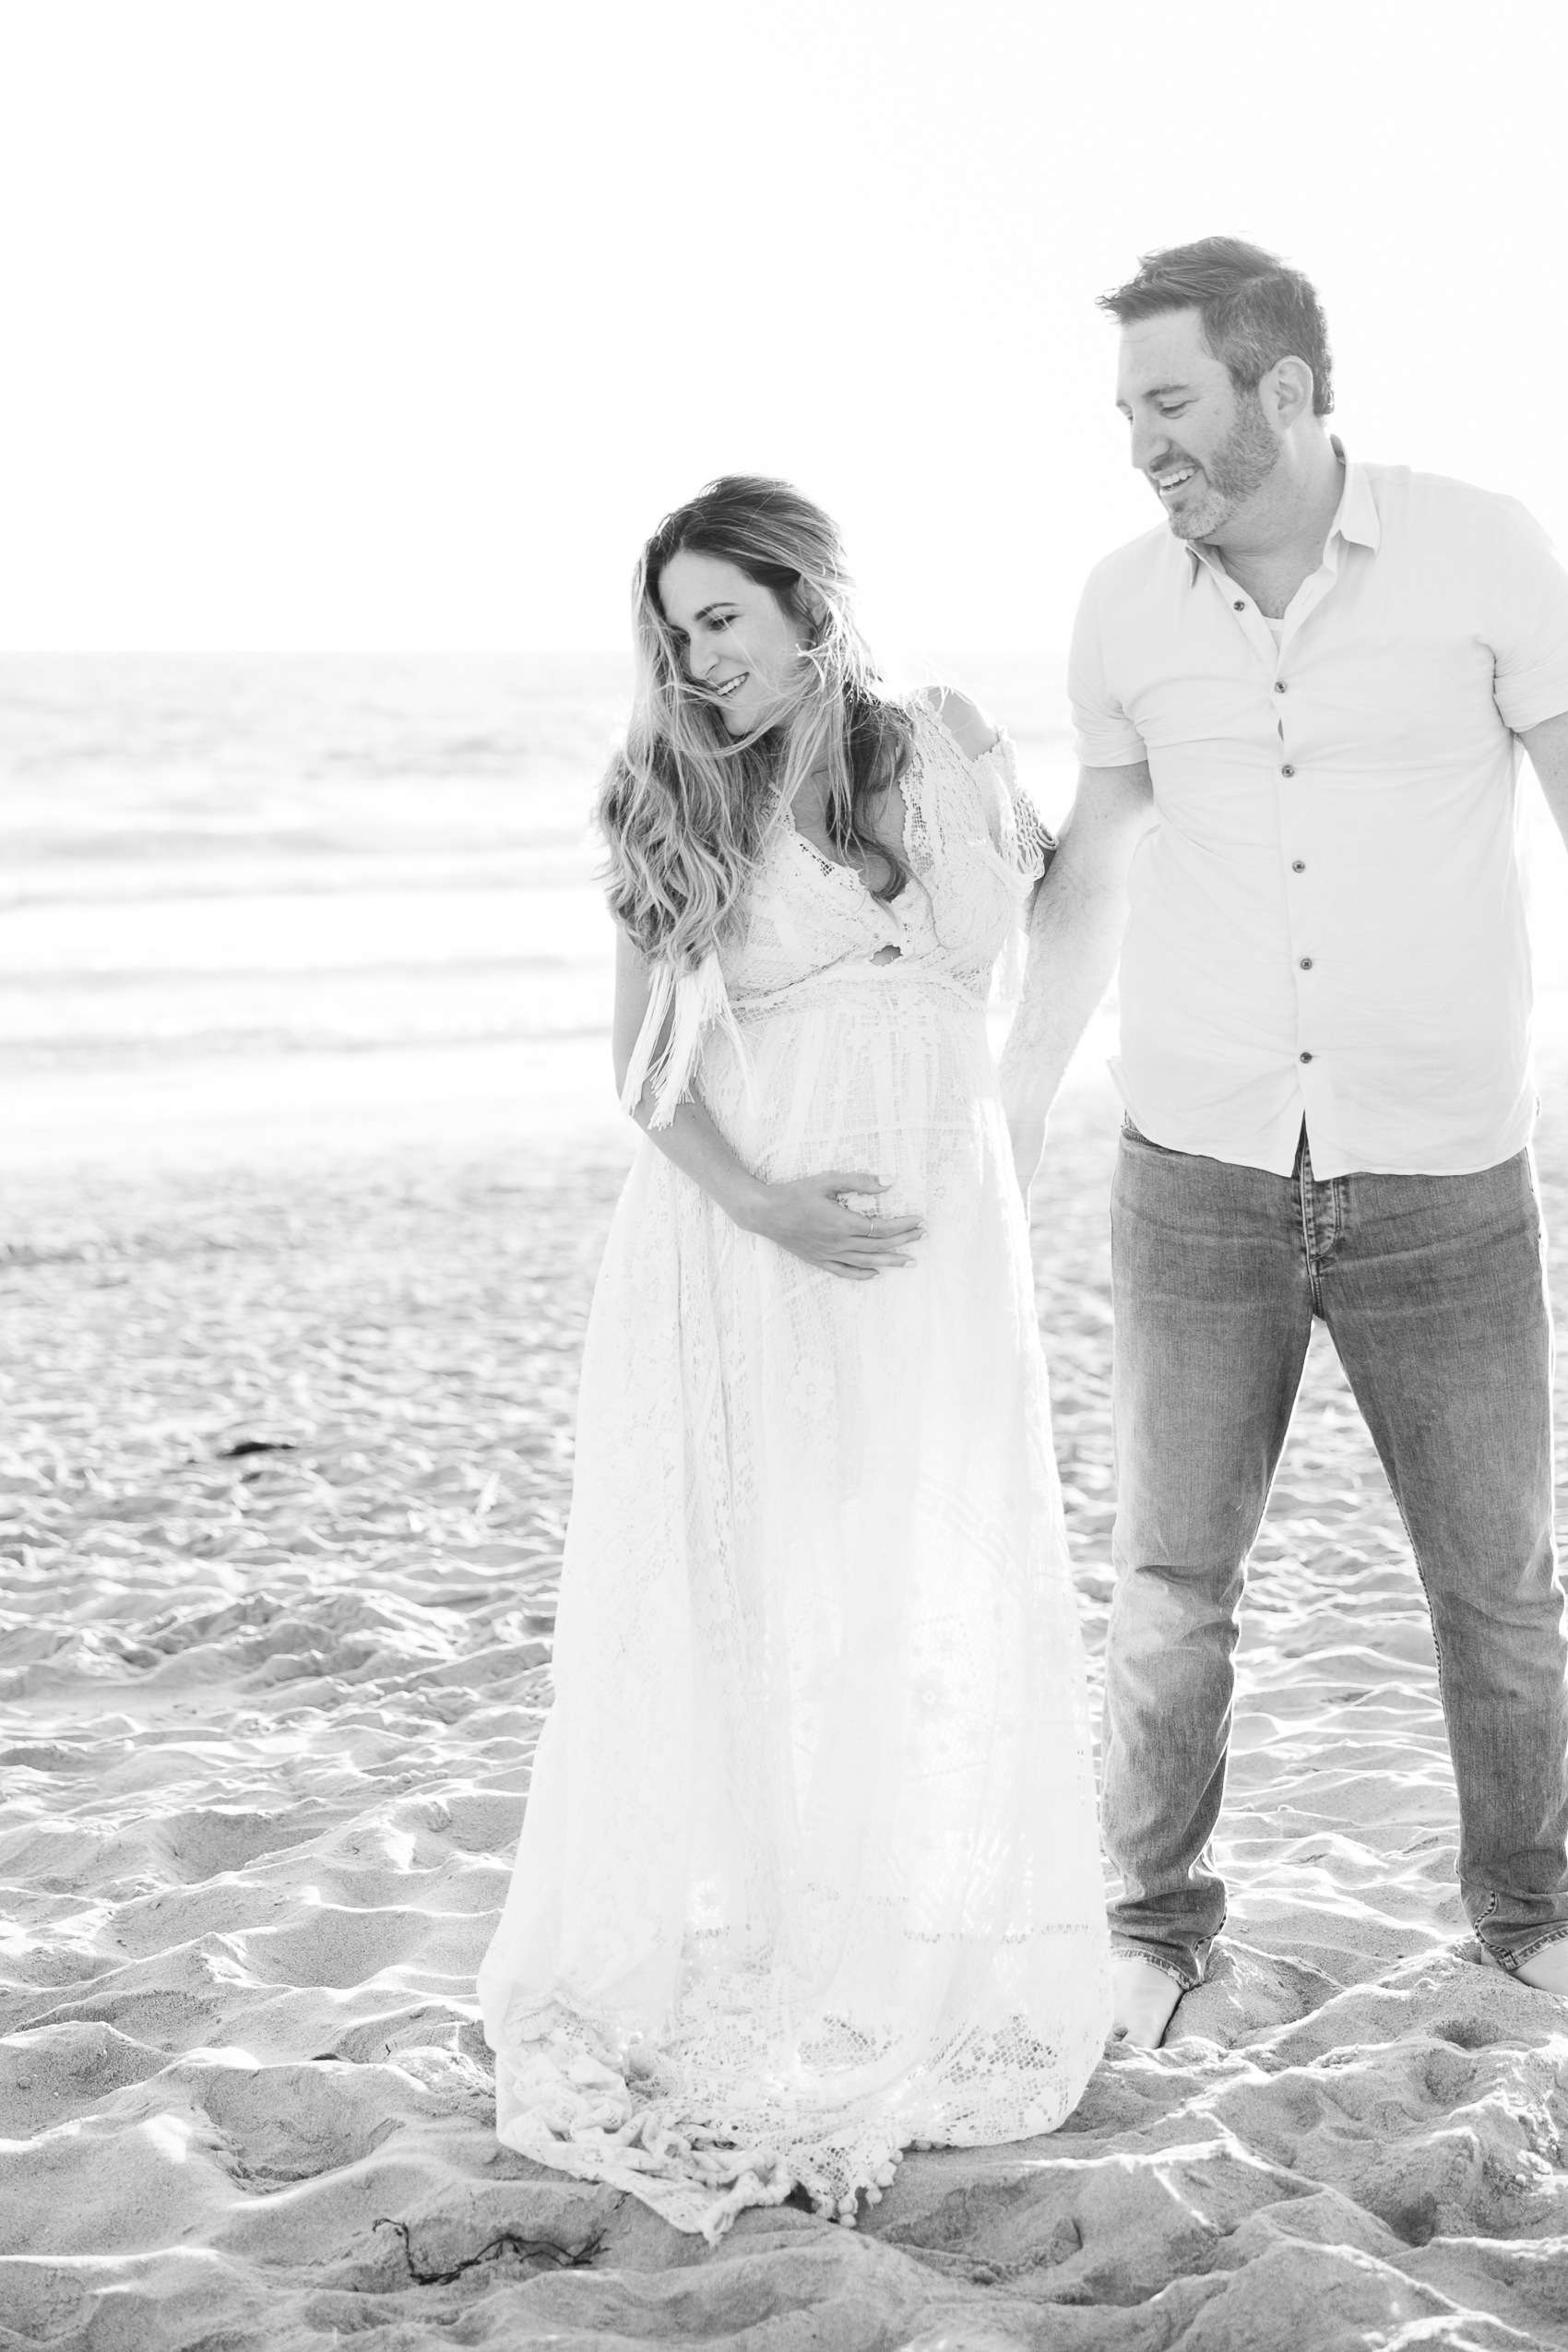 Los_Angeles_Family_Photographer_Maternity_Photos_Baby_Pregnancy_Venice_Beach_Golden_Hour-0835.jpg